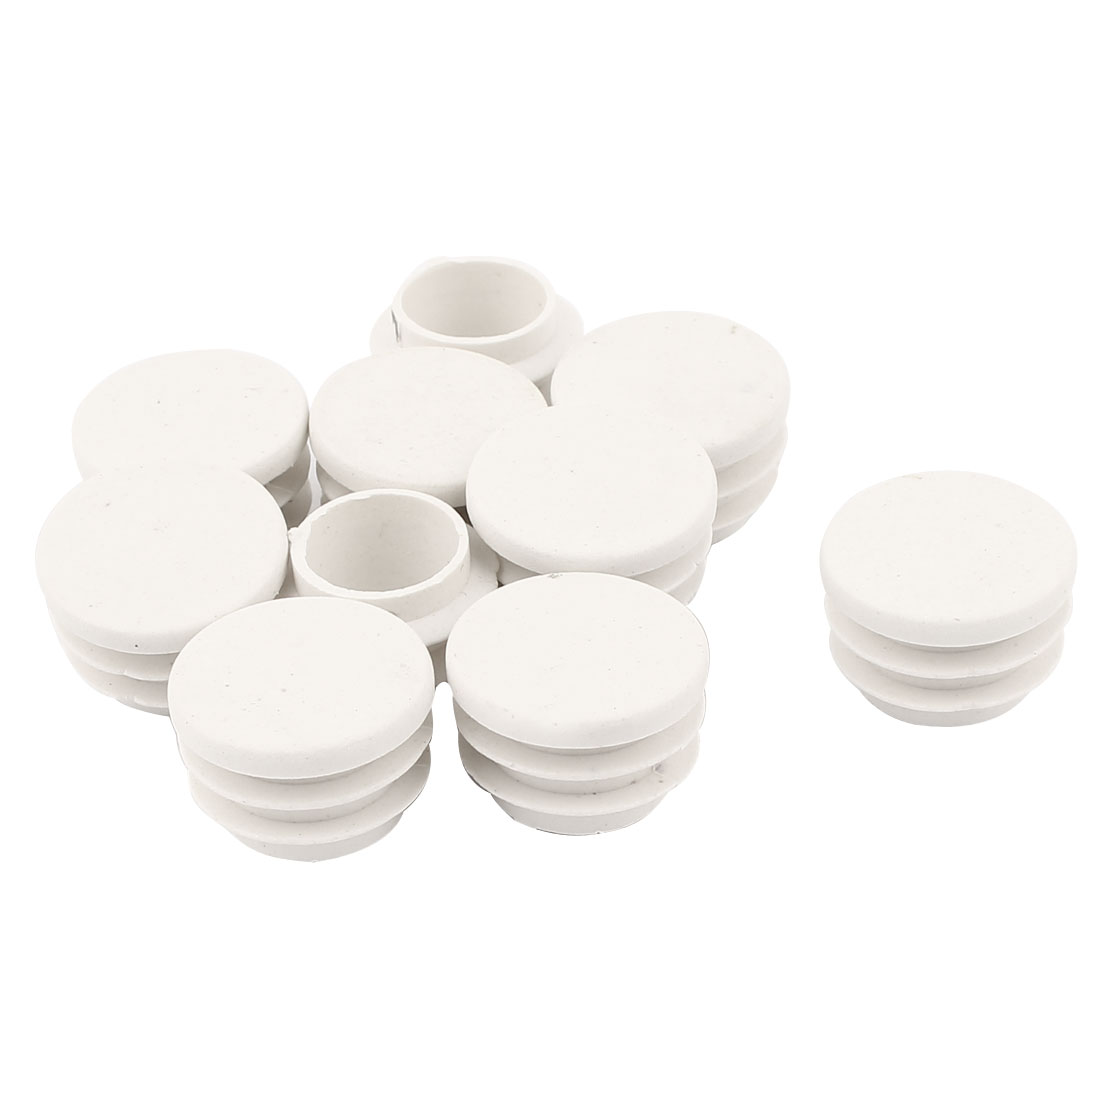 10 Pcs White Plastic 22mm Dia Round Tubing Tube Insert Caps Covers